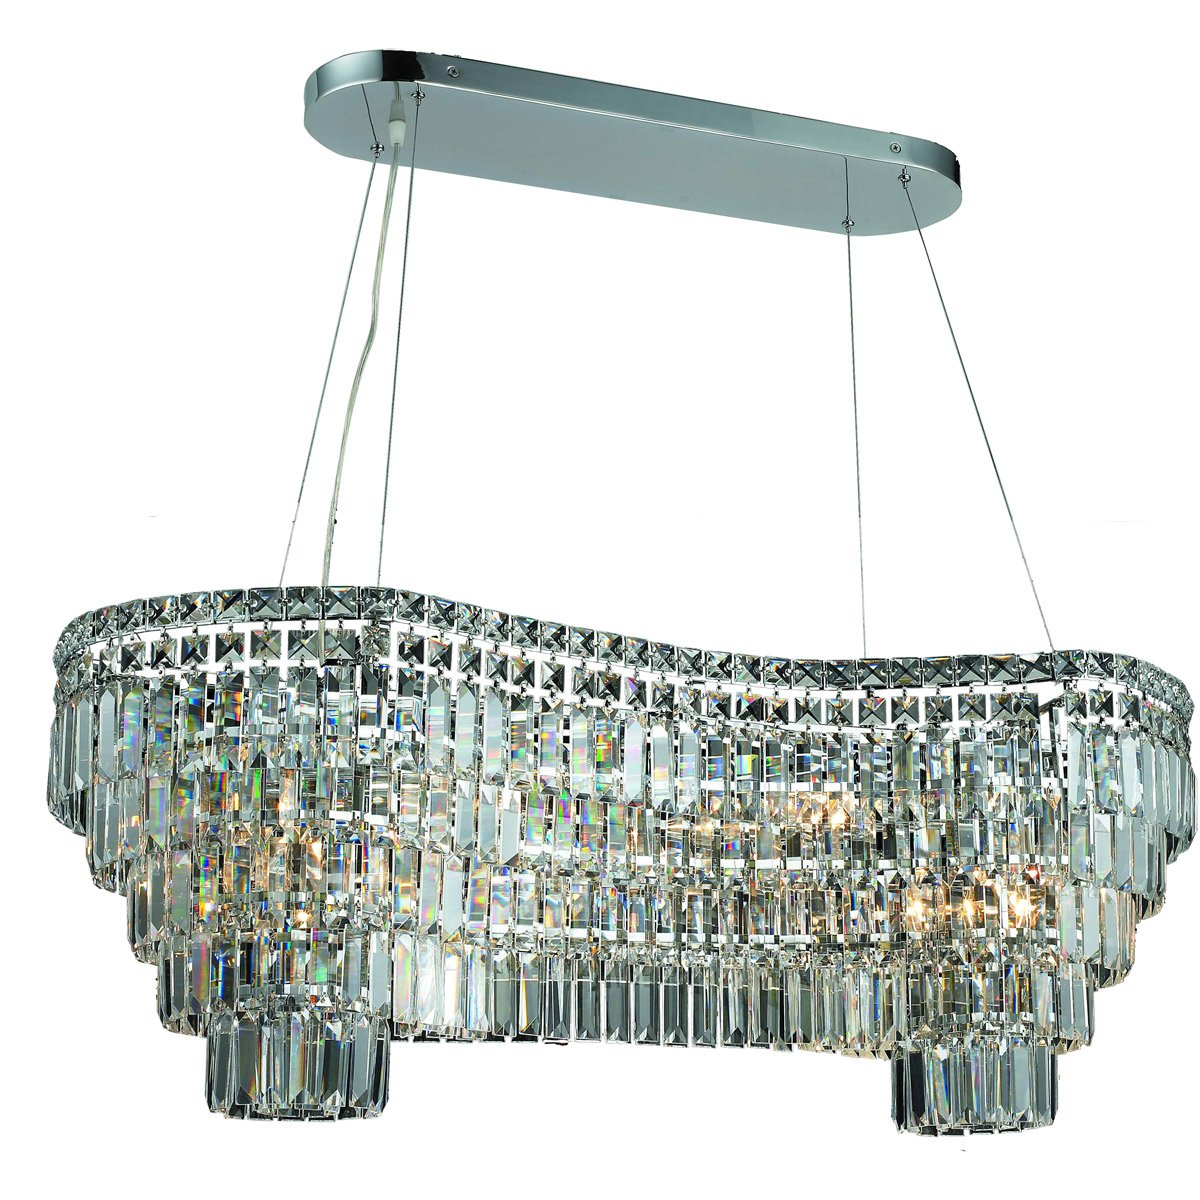 Maxime 40 Crystal Chandelier With 14 Lights - Chrome Finish And Elegant Cut Crystal Chandelier